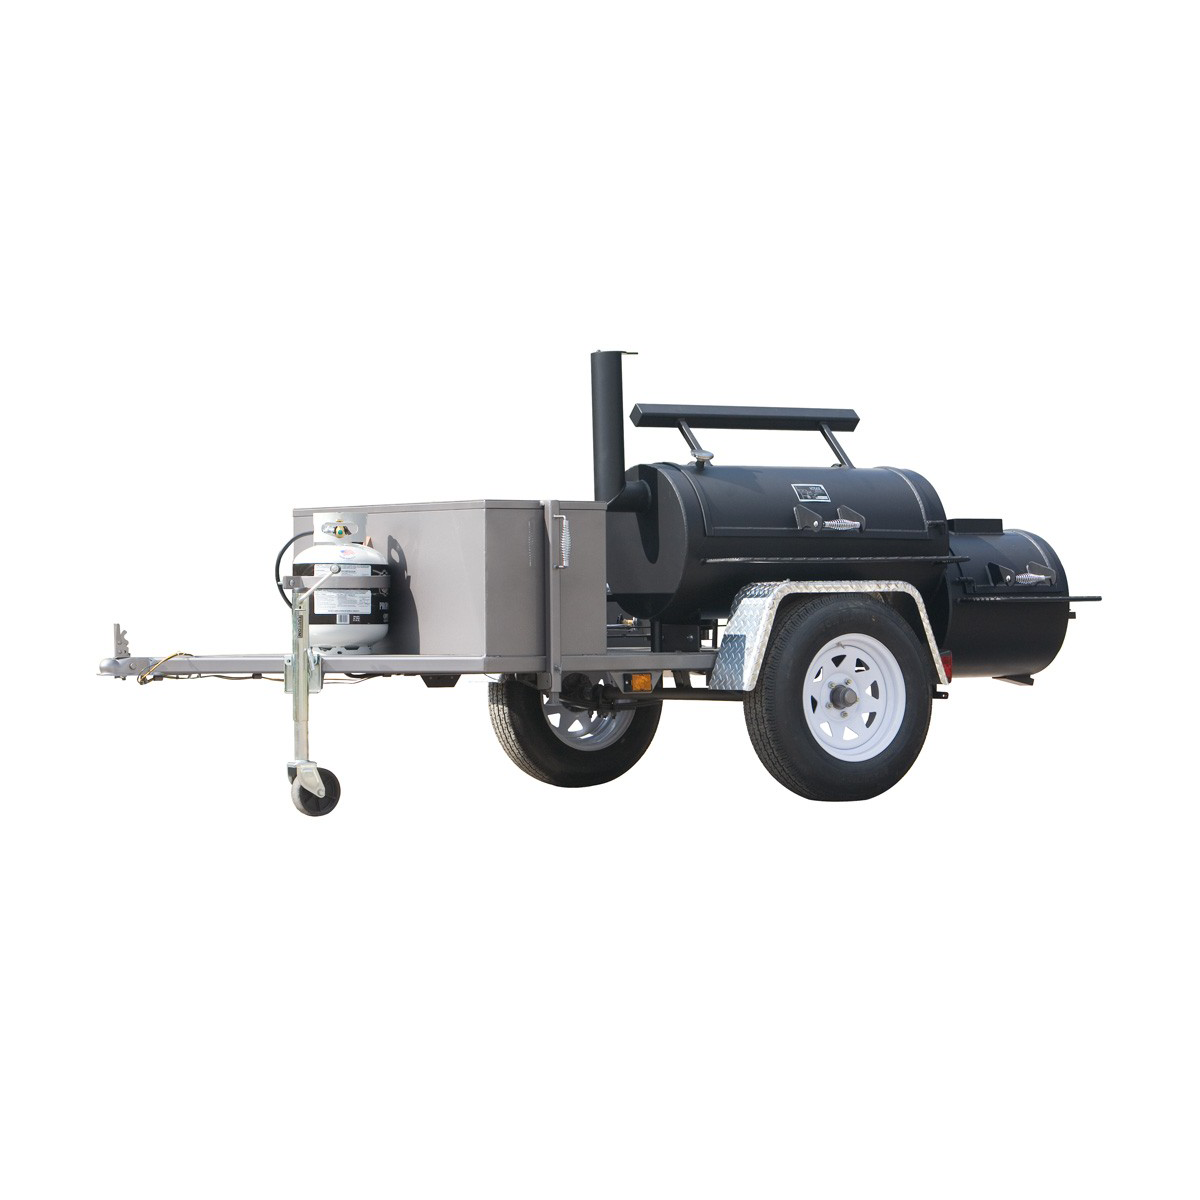 "Yoder Smoker 20"" Santa Fe Trailer Mounted Smoker"